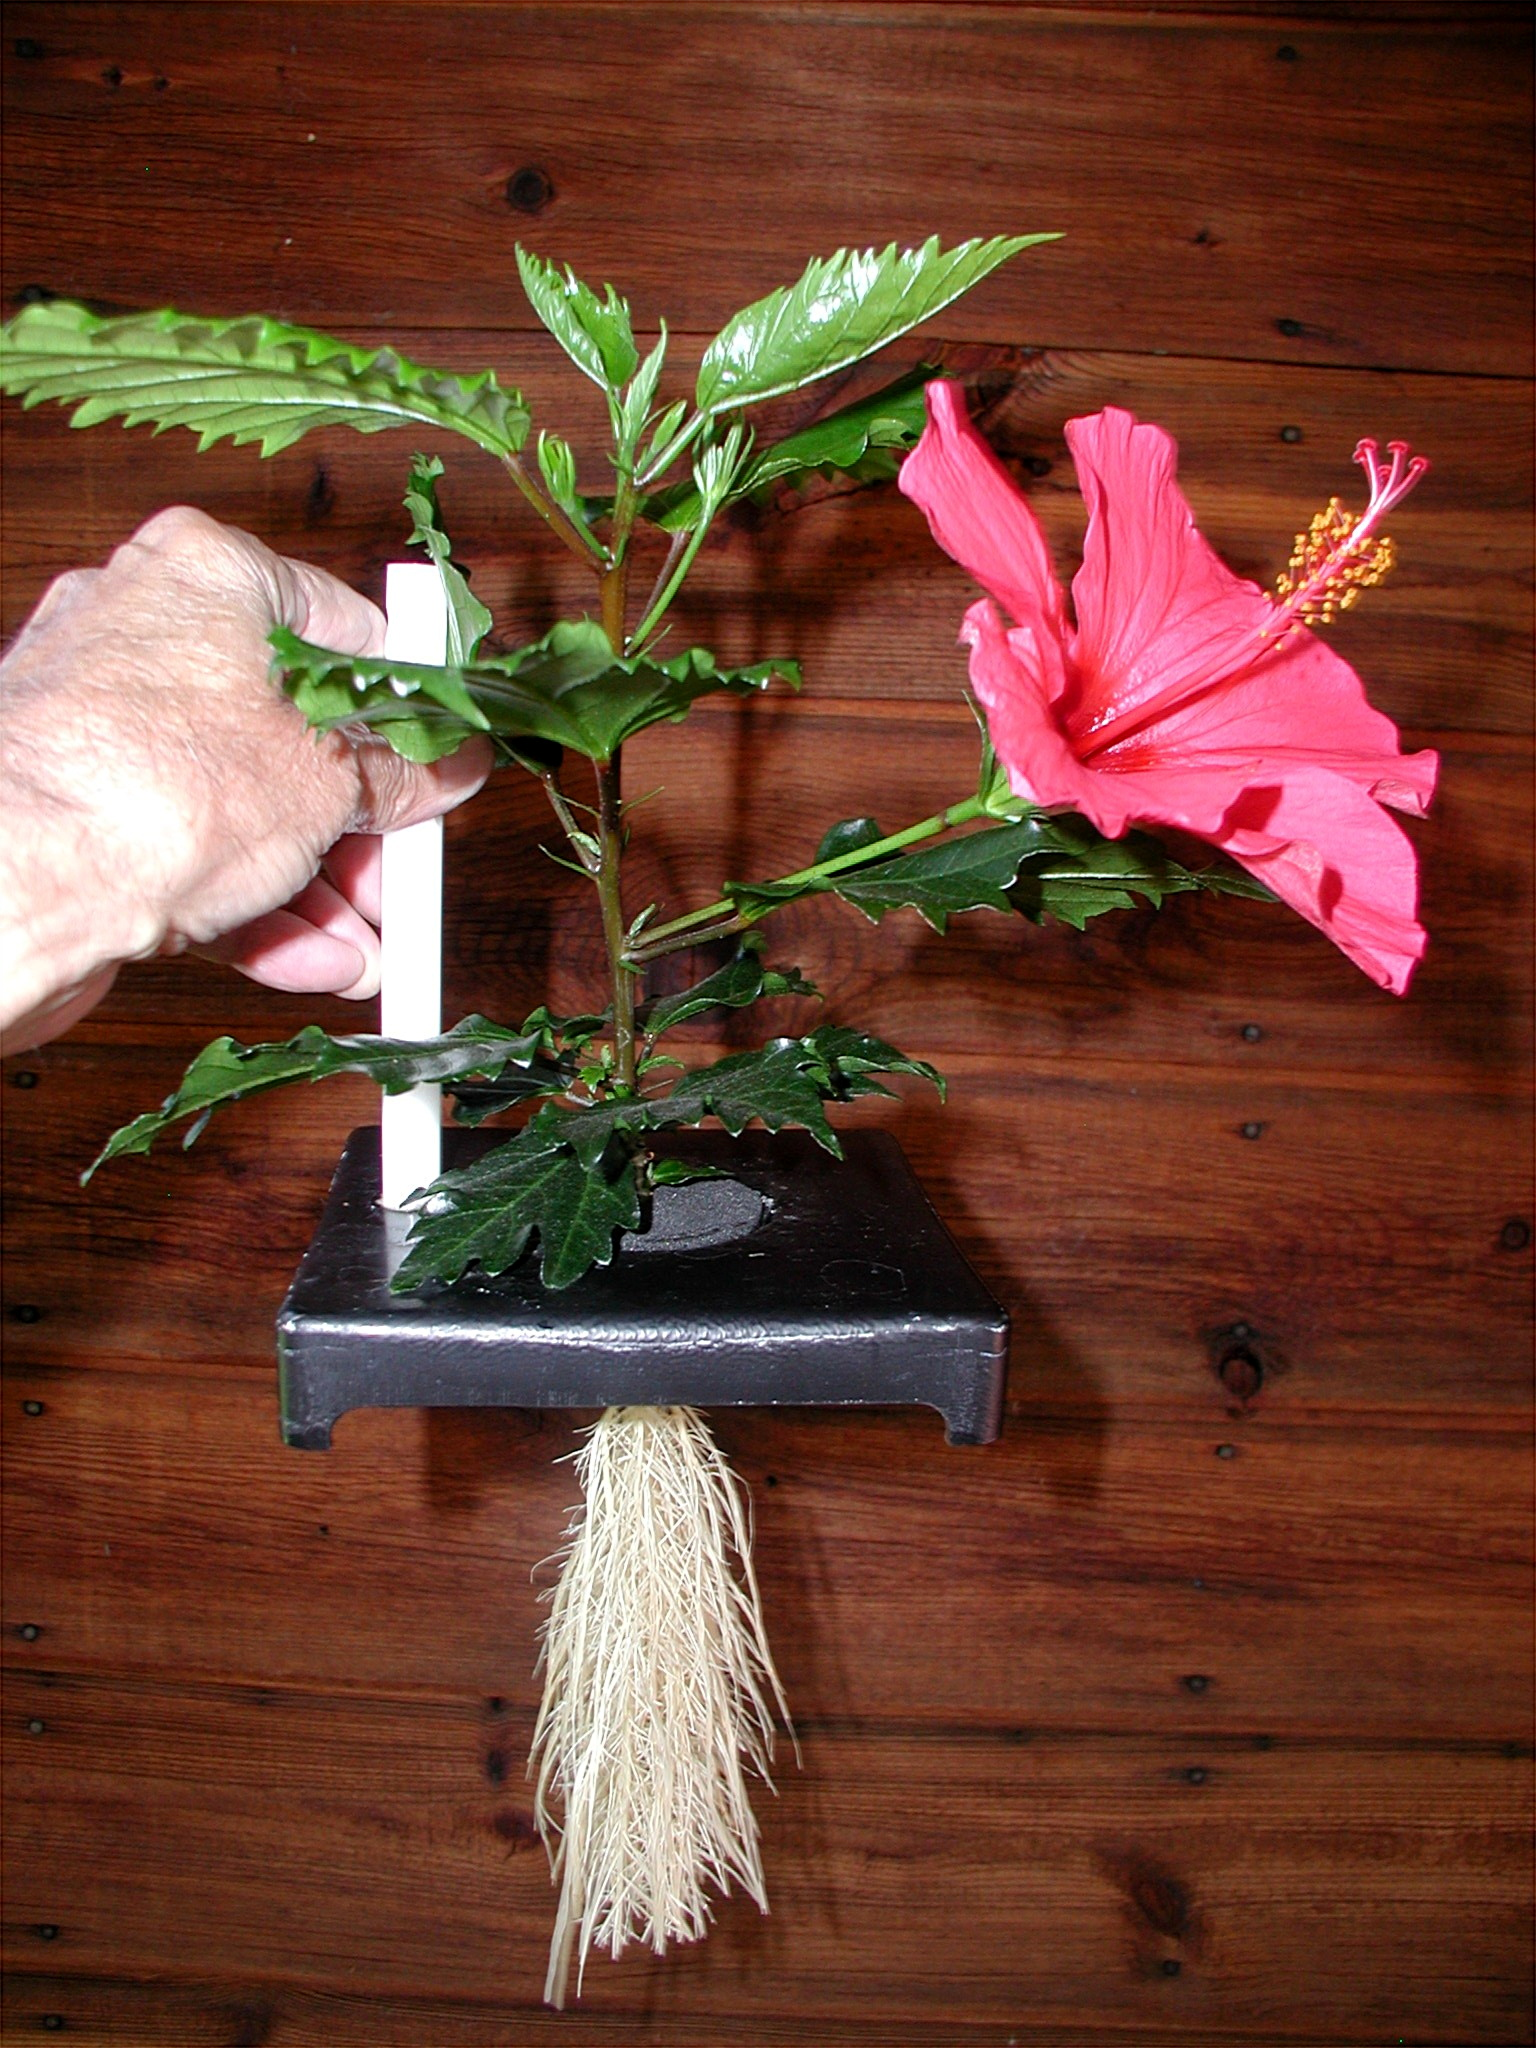 Aeroponics not Hydroponics - Hibiscus Started from a Cutting... Simple to use and maintain.